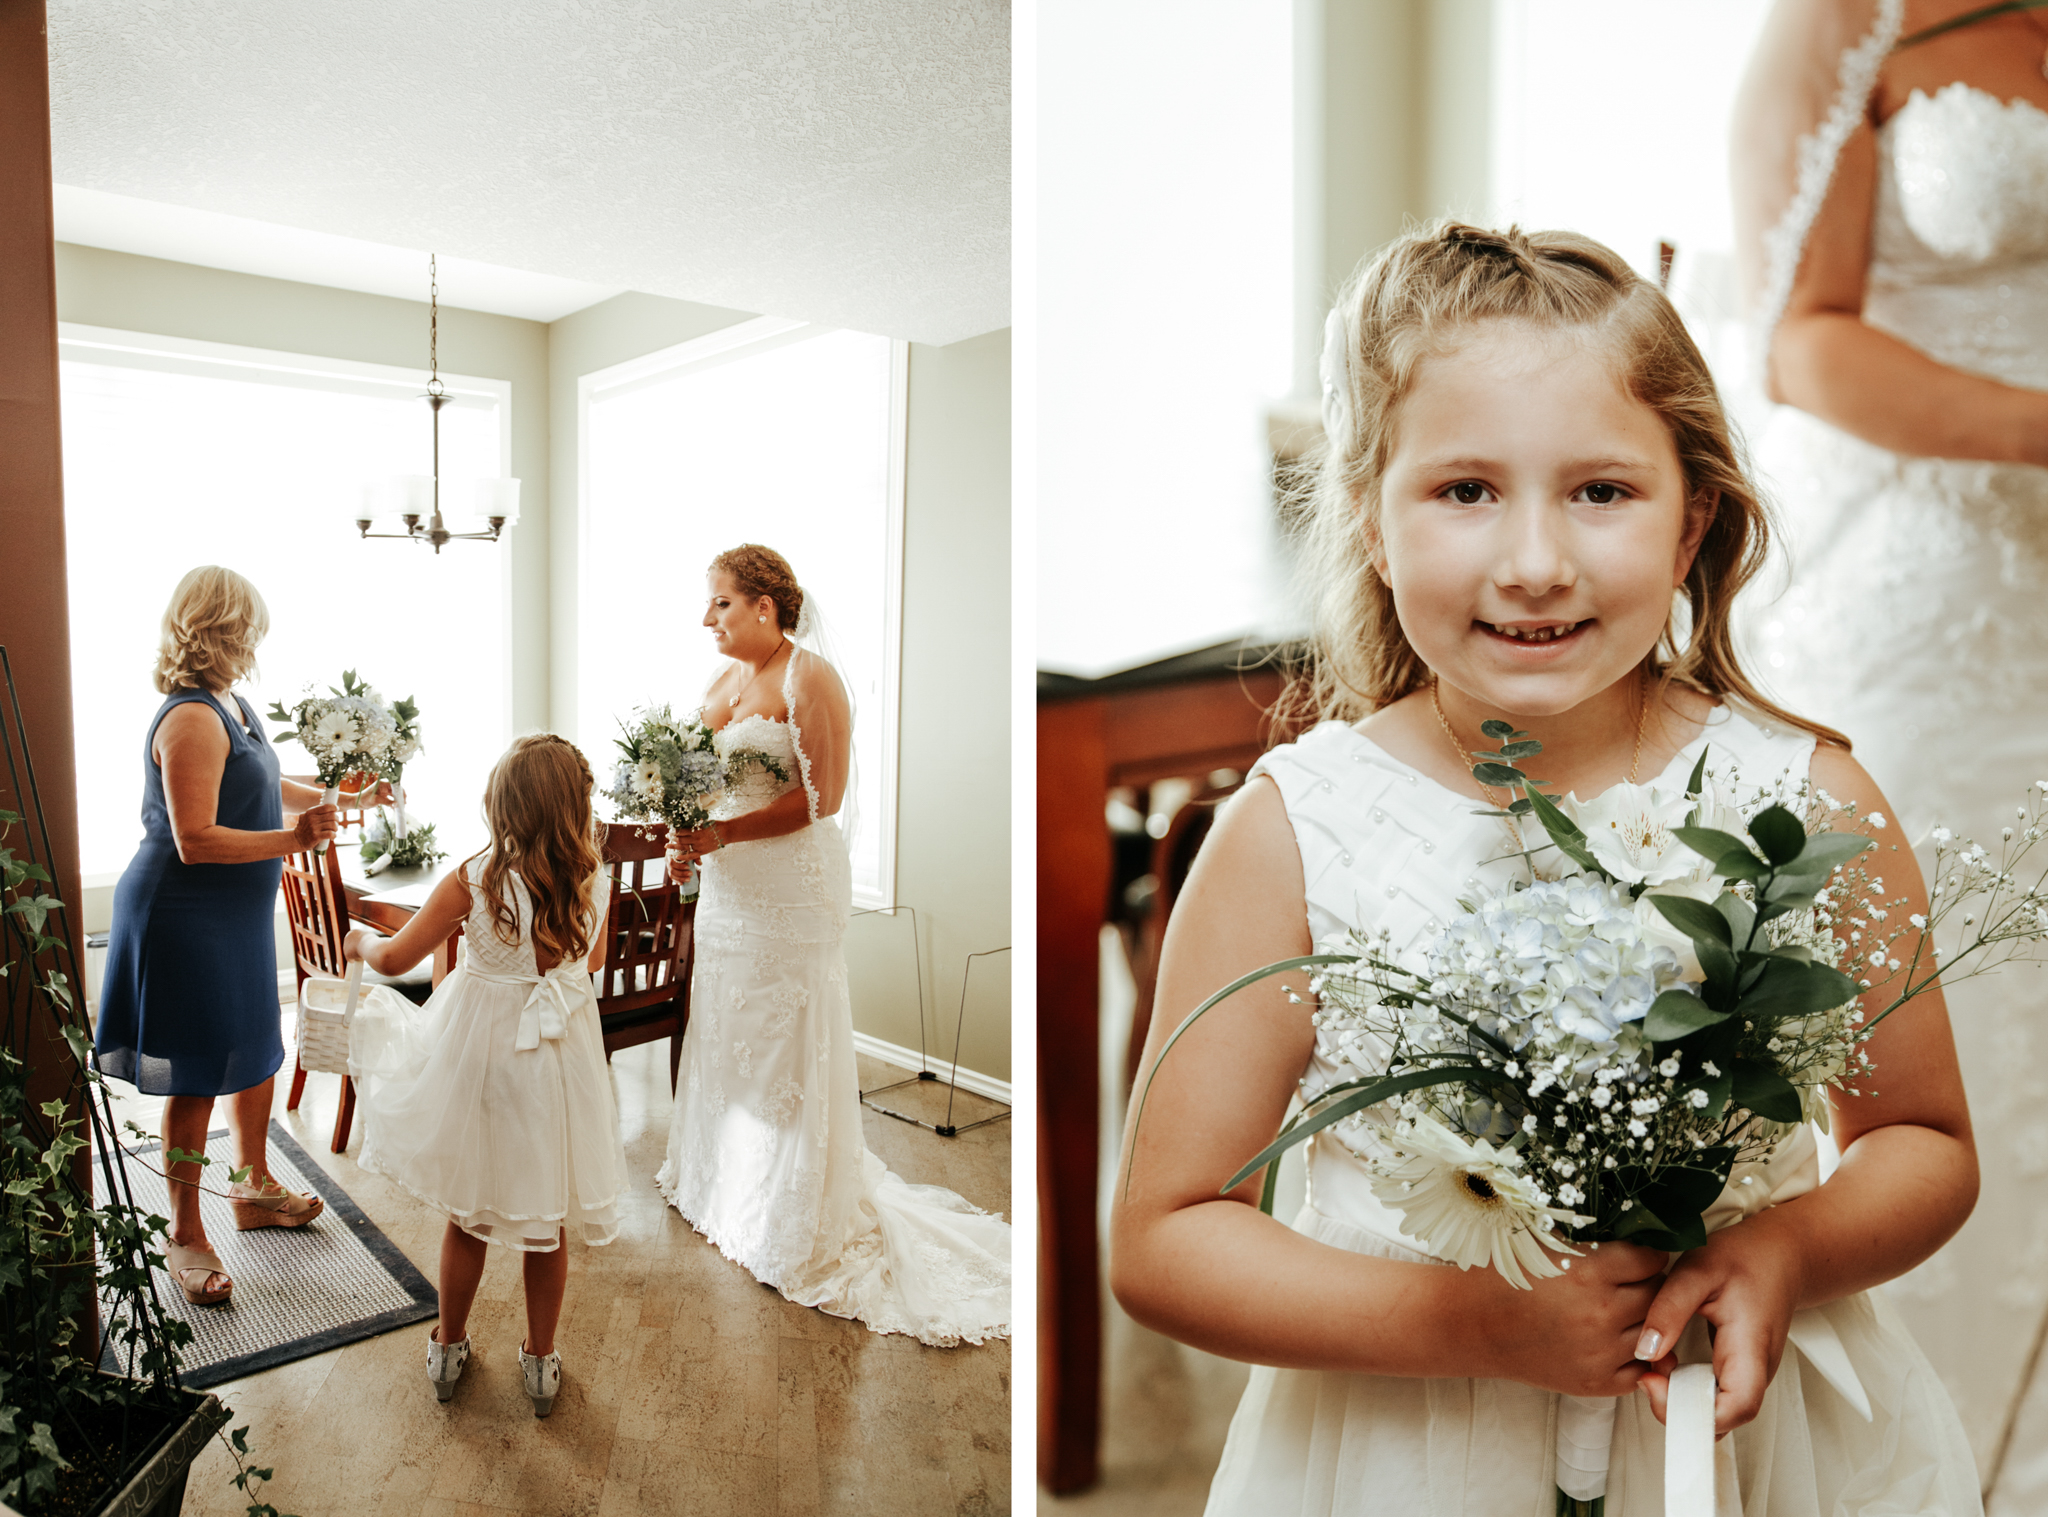 lethbridge-wedding-photographer-love-and-be-loved-photography-trent-danielle-galt-reception-picture-image-photo-77.jpg